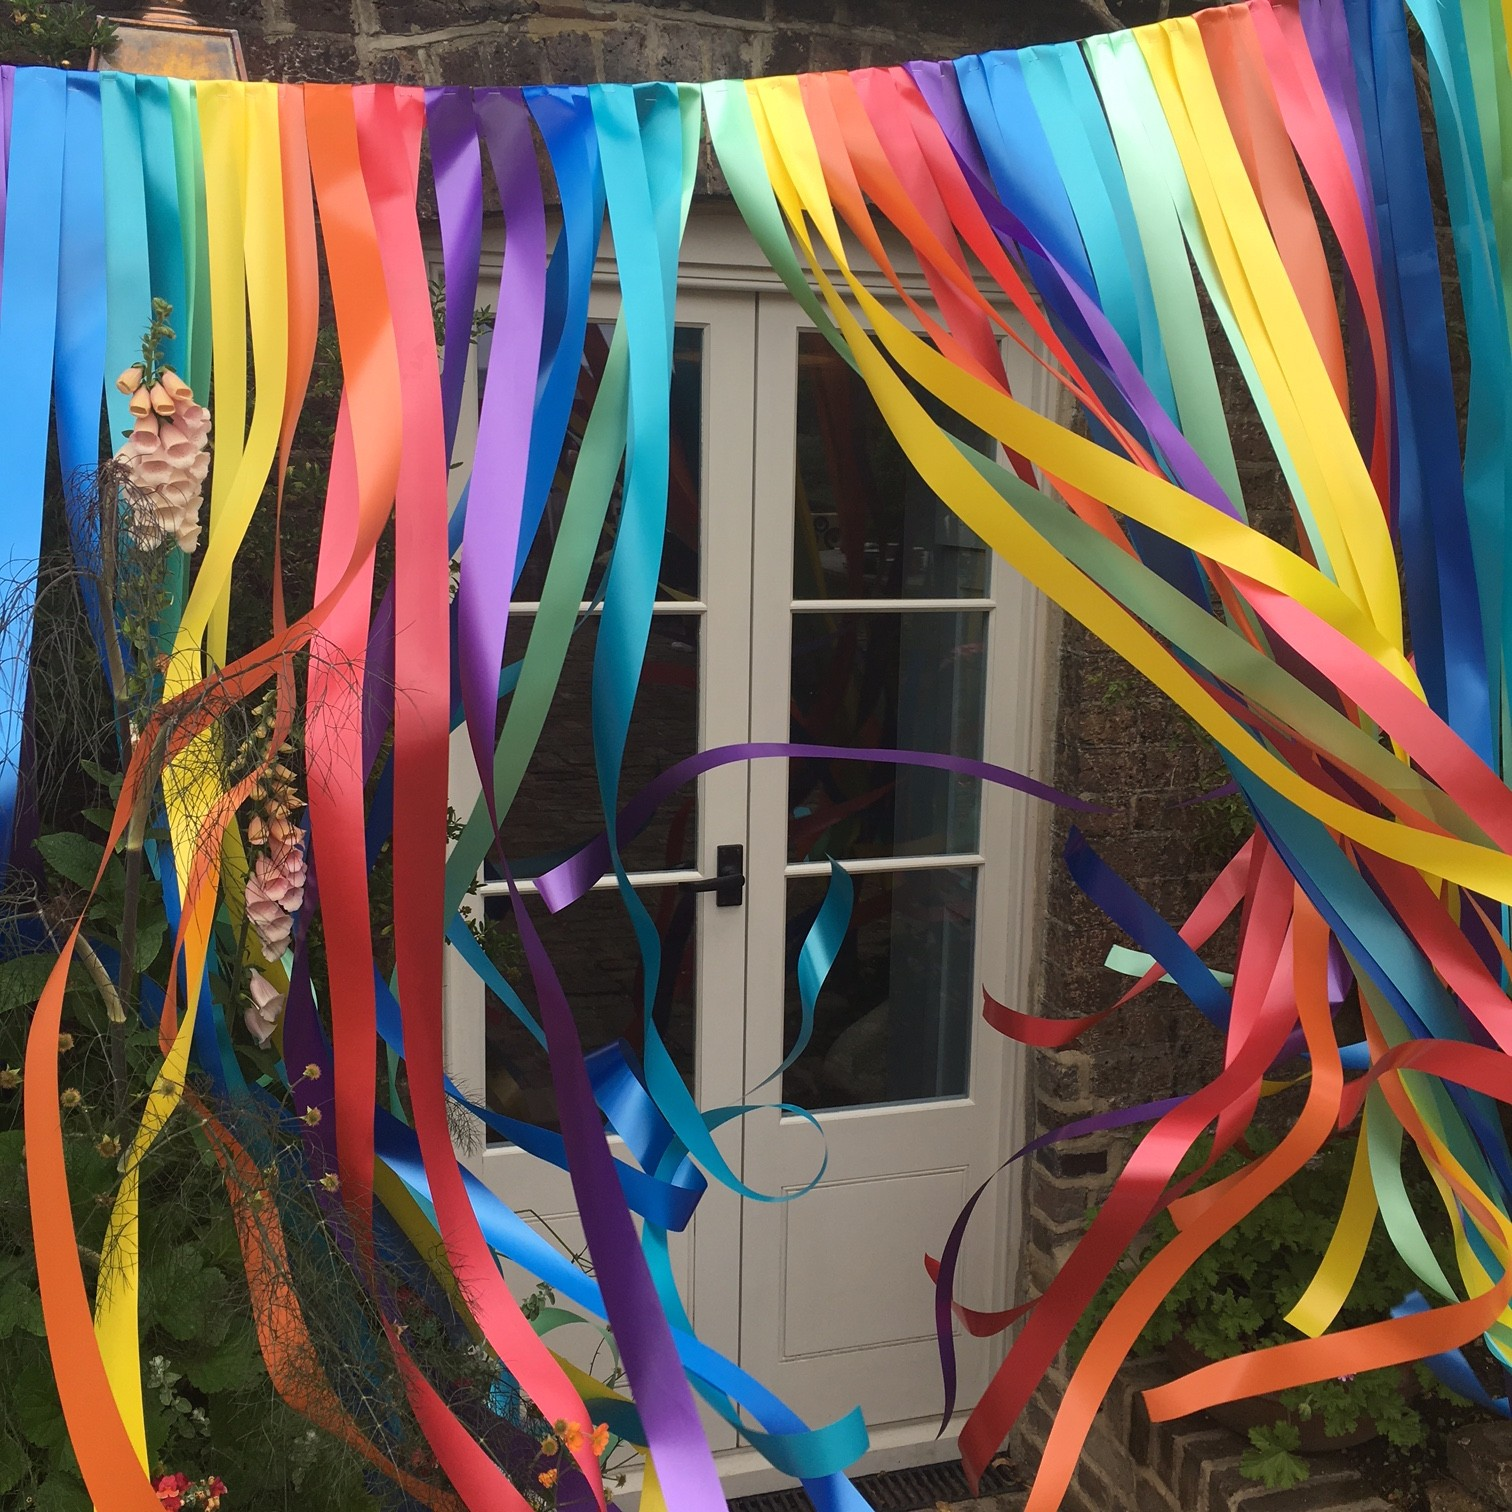 This rainbow ribbon garland provided the perfect Instagram backdrop for guests